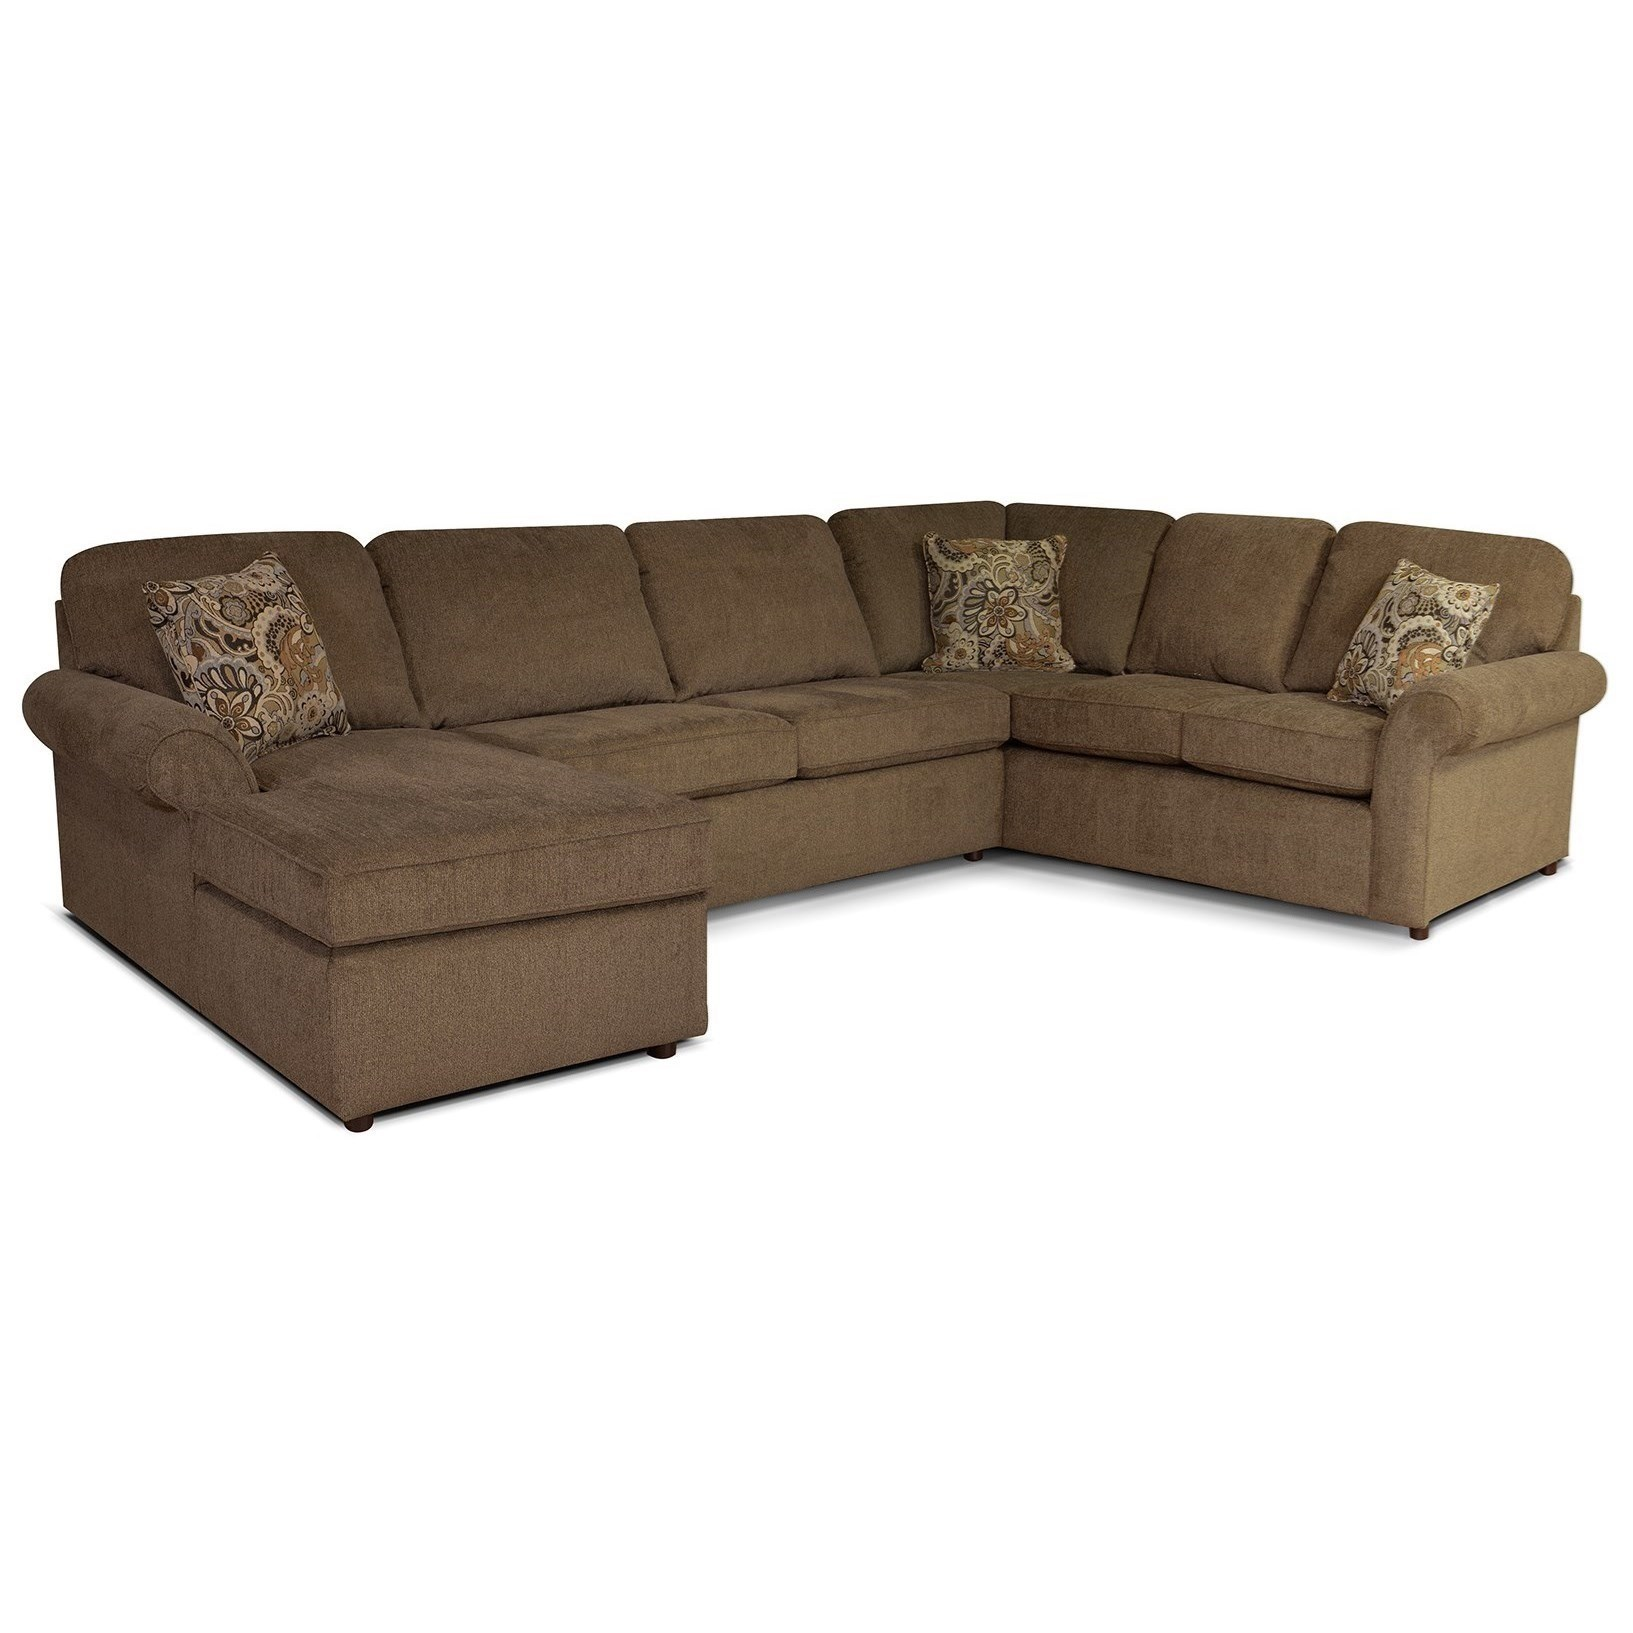 Malibu 5-6 Seat (left side) Chaise Sectional by England at Gill Brothers Furniture